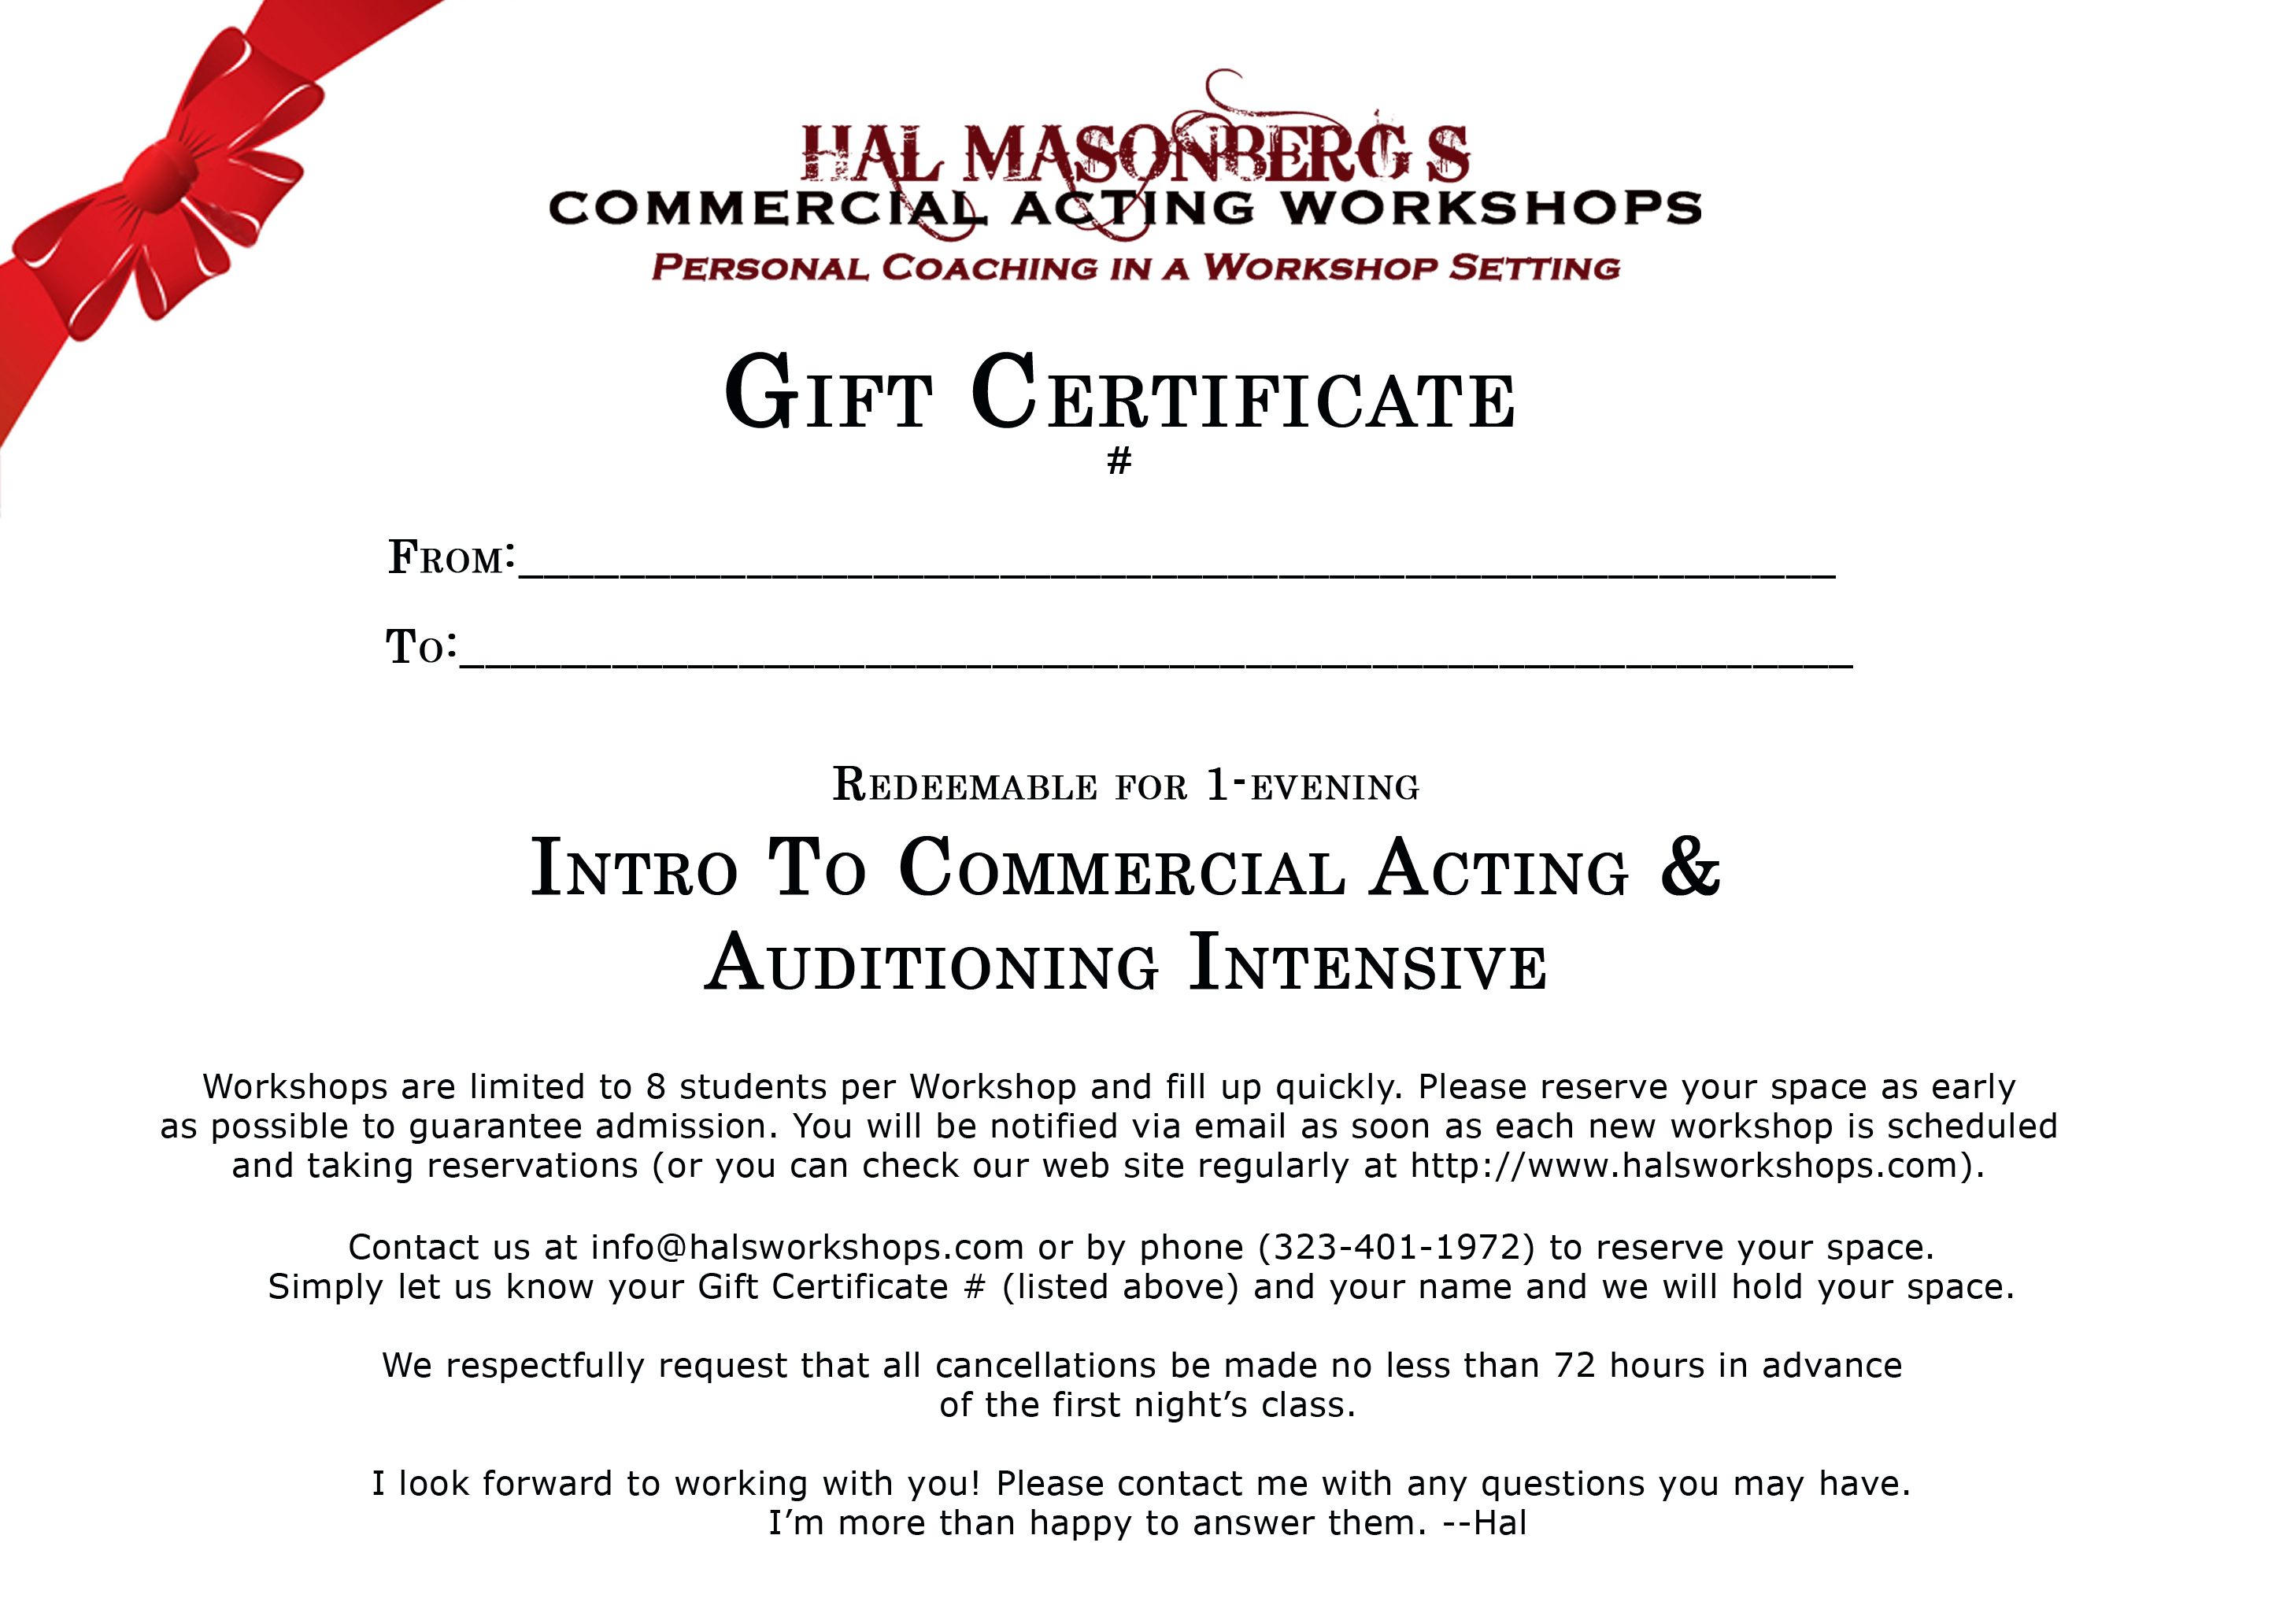 Hal masonbergs commercial acting workshops gift certificates workshopgiftcertificate2017 xflitez Choice Image